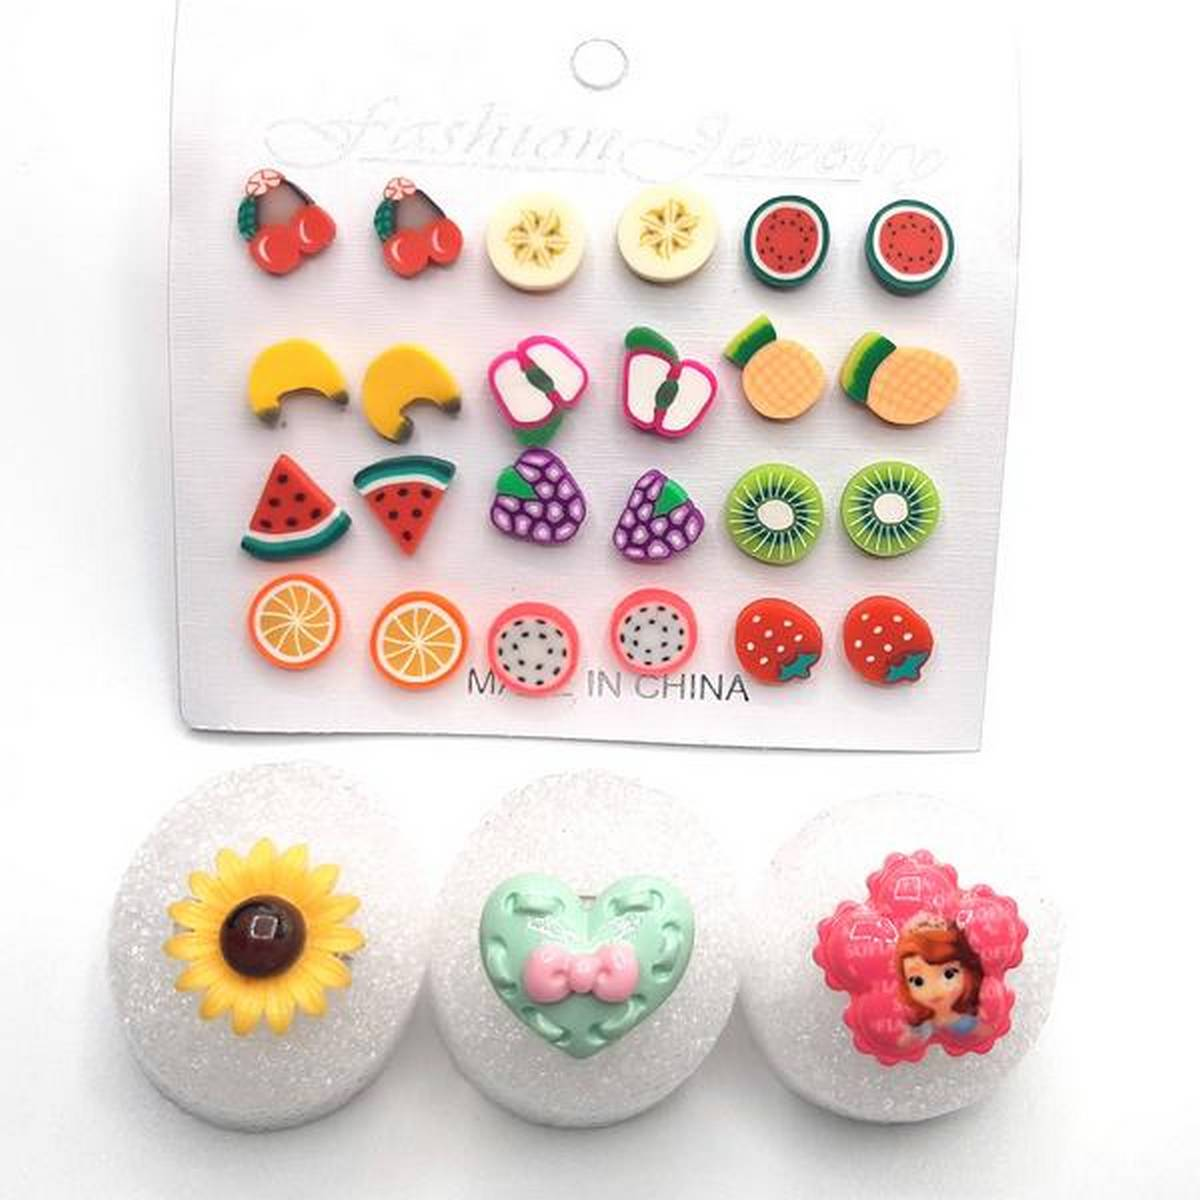 Earrings set of 12 pairs with 3 finger for girls fashion rings tops studs